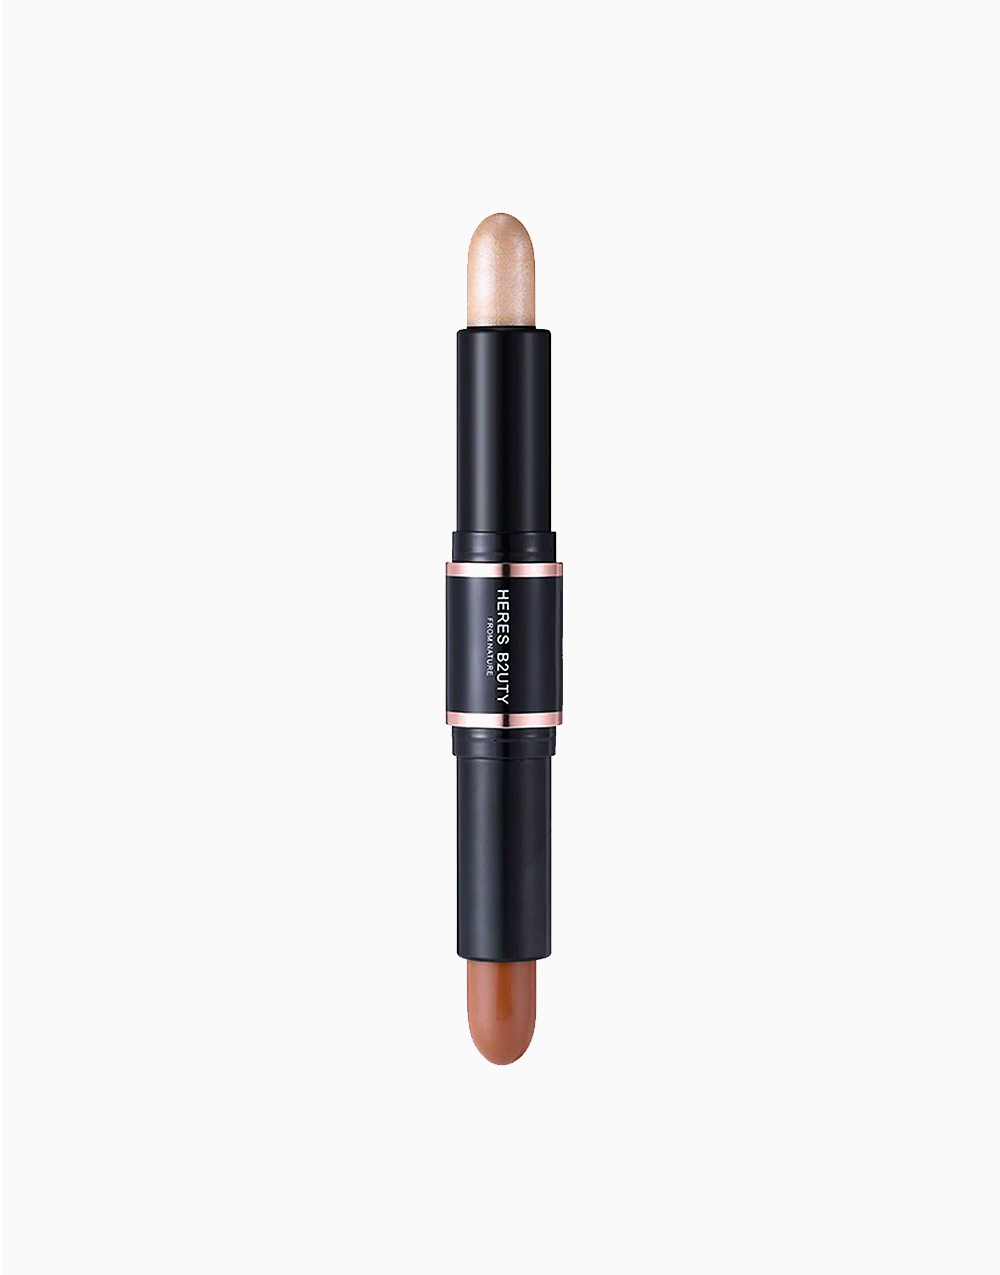 Grooming Rods Highlighter Contour Stick by Here's B2uty | H1012